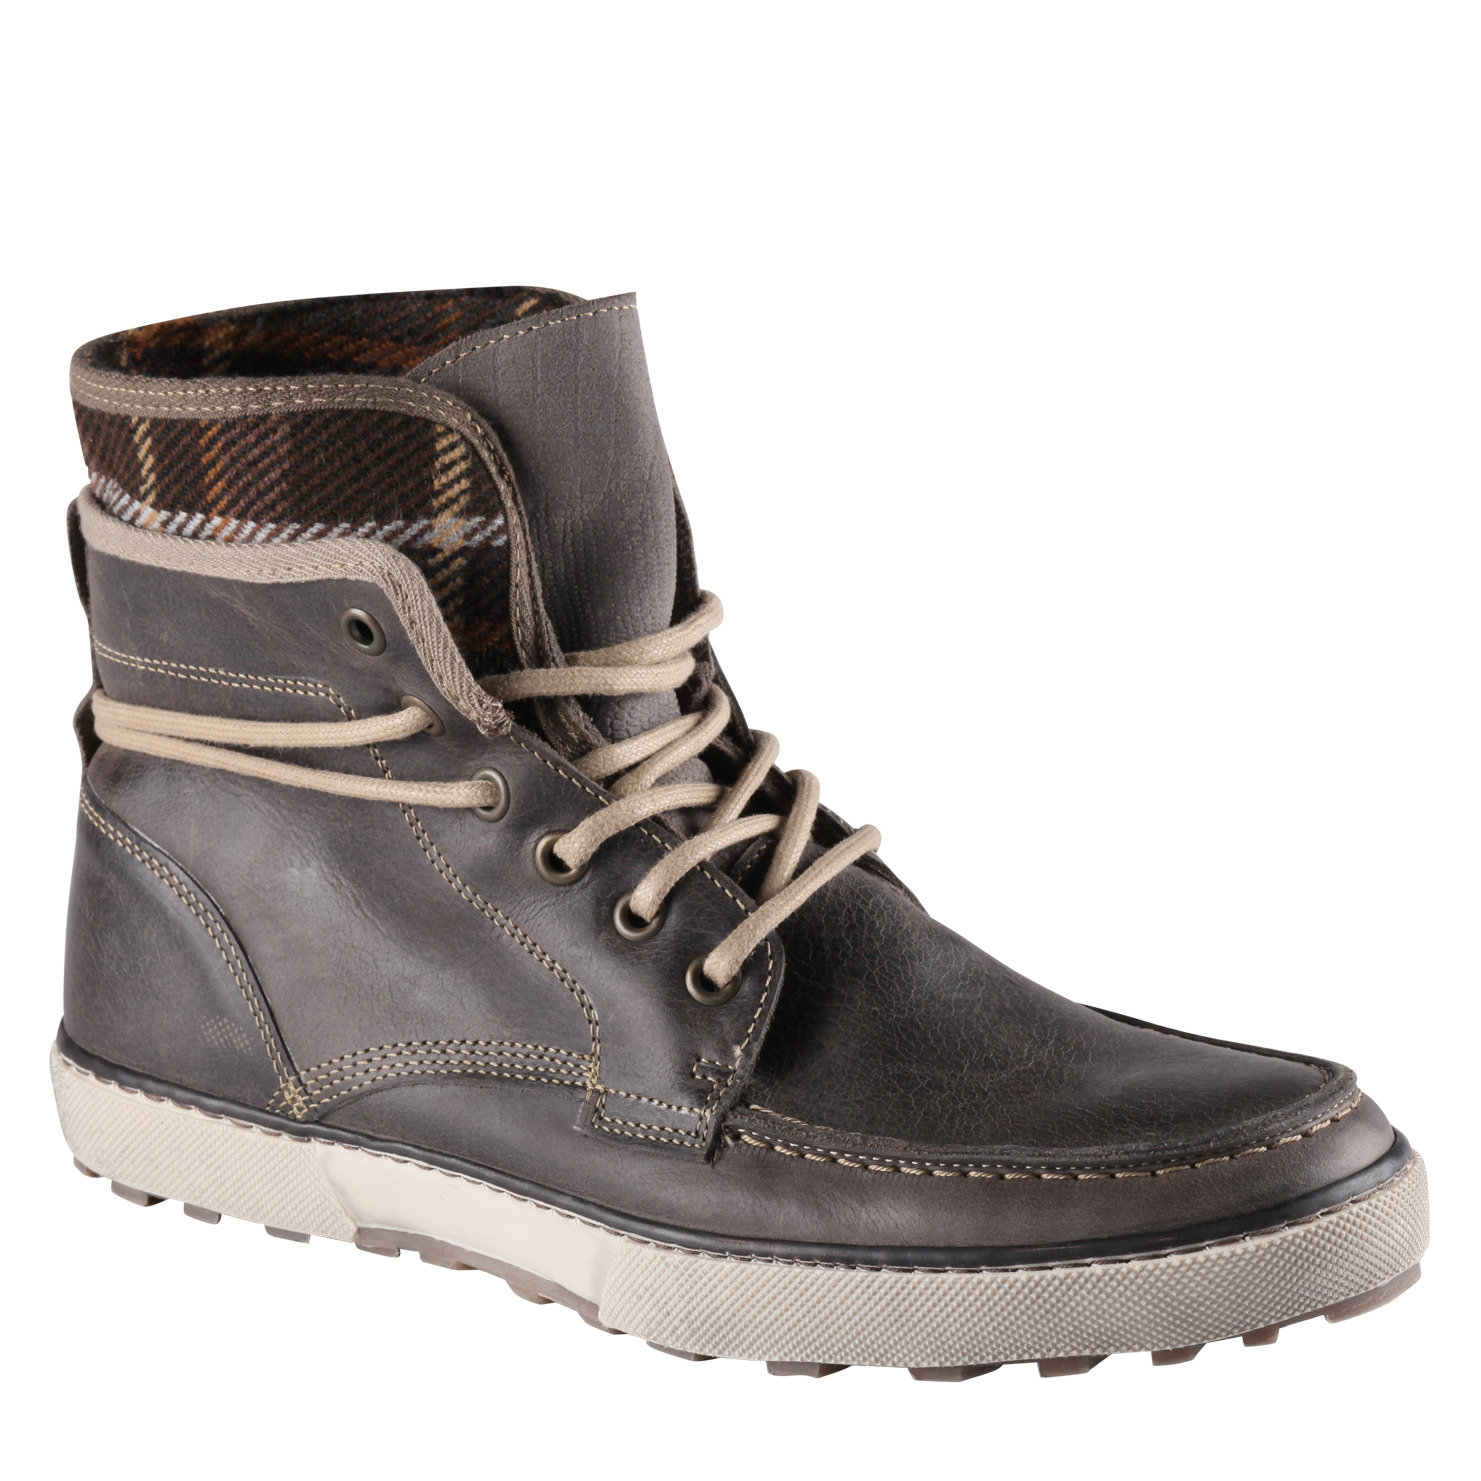 Stylish Boots For Men XhT5SXzl